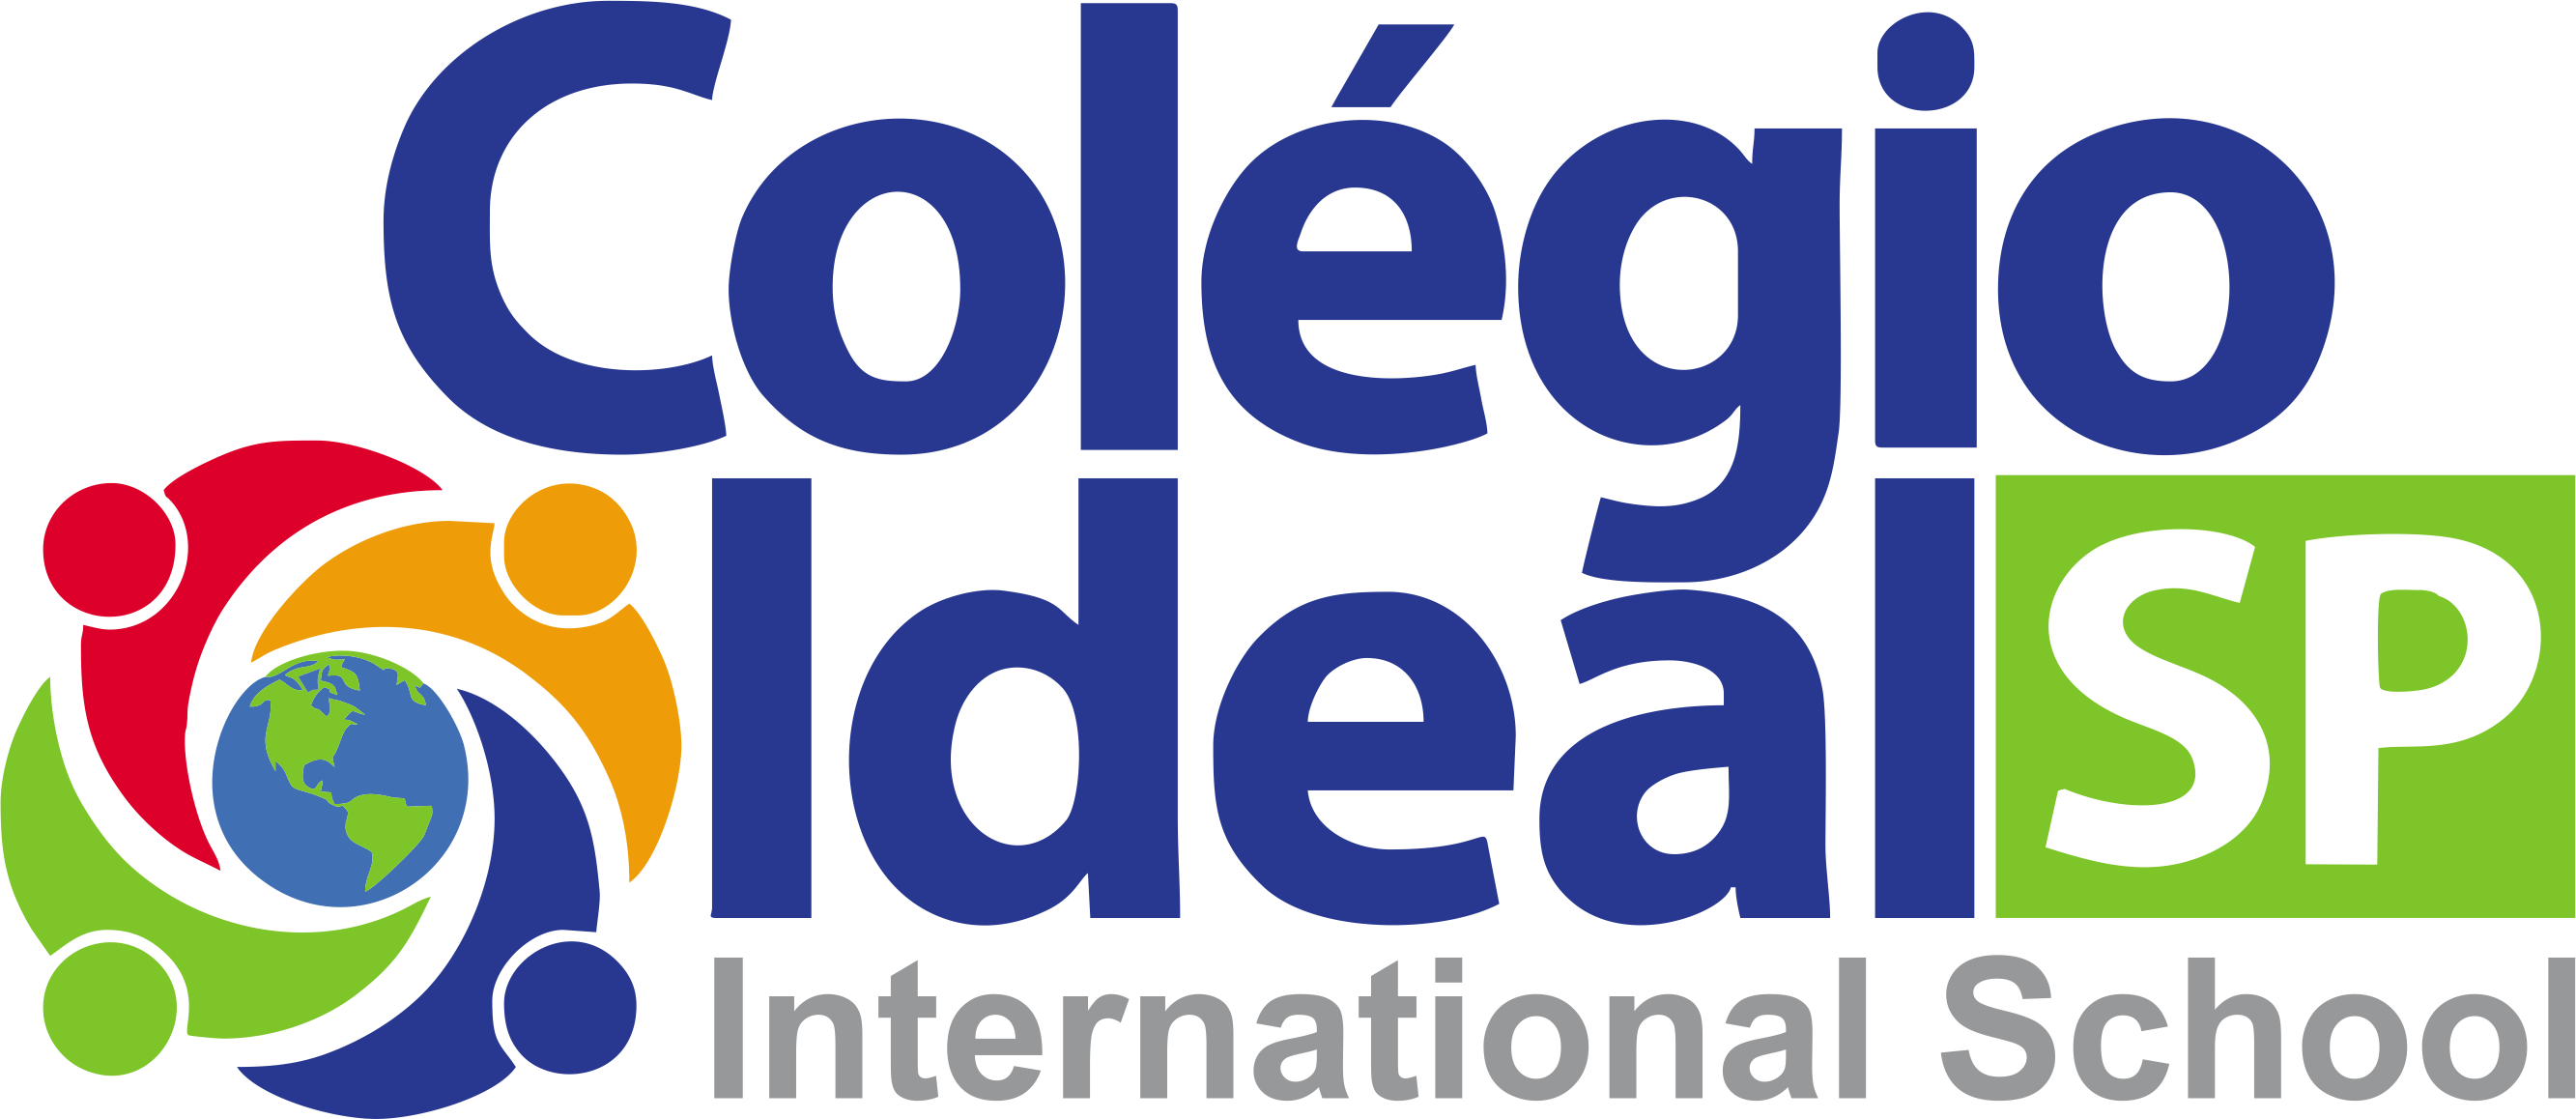 LOGO COLEGIO IDEAL SP - HORIZONTAL